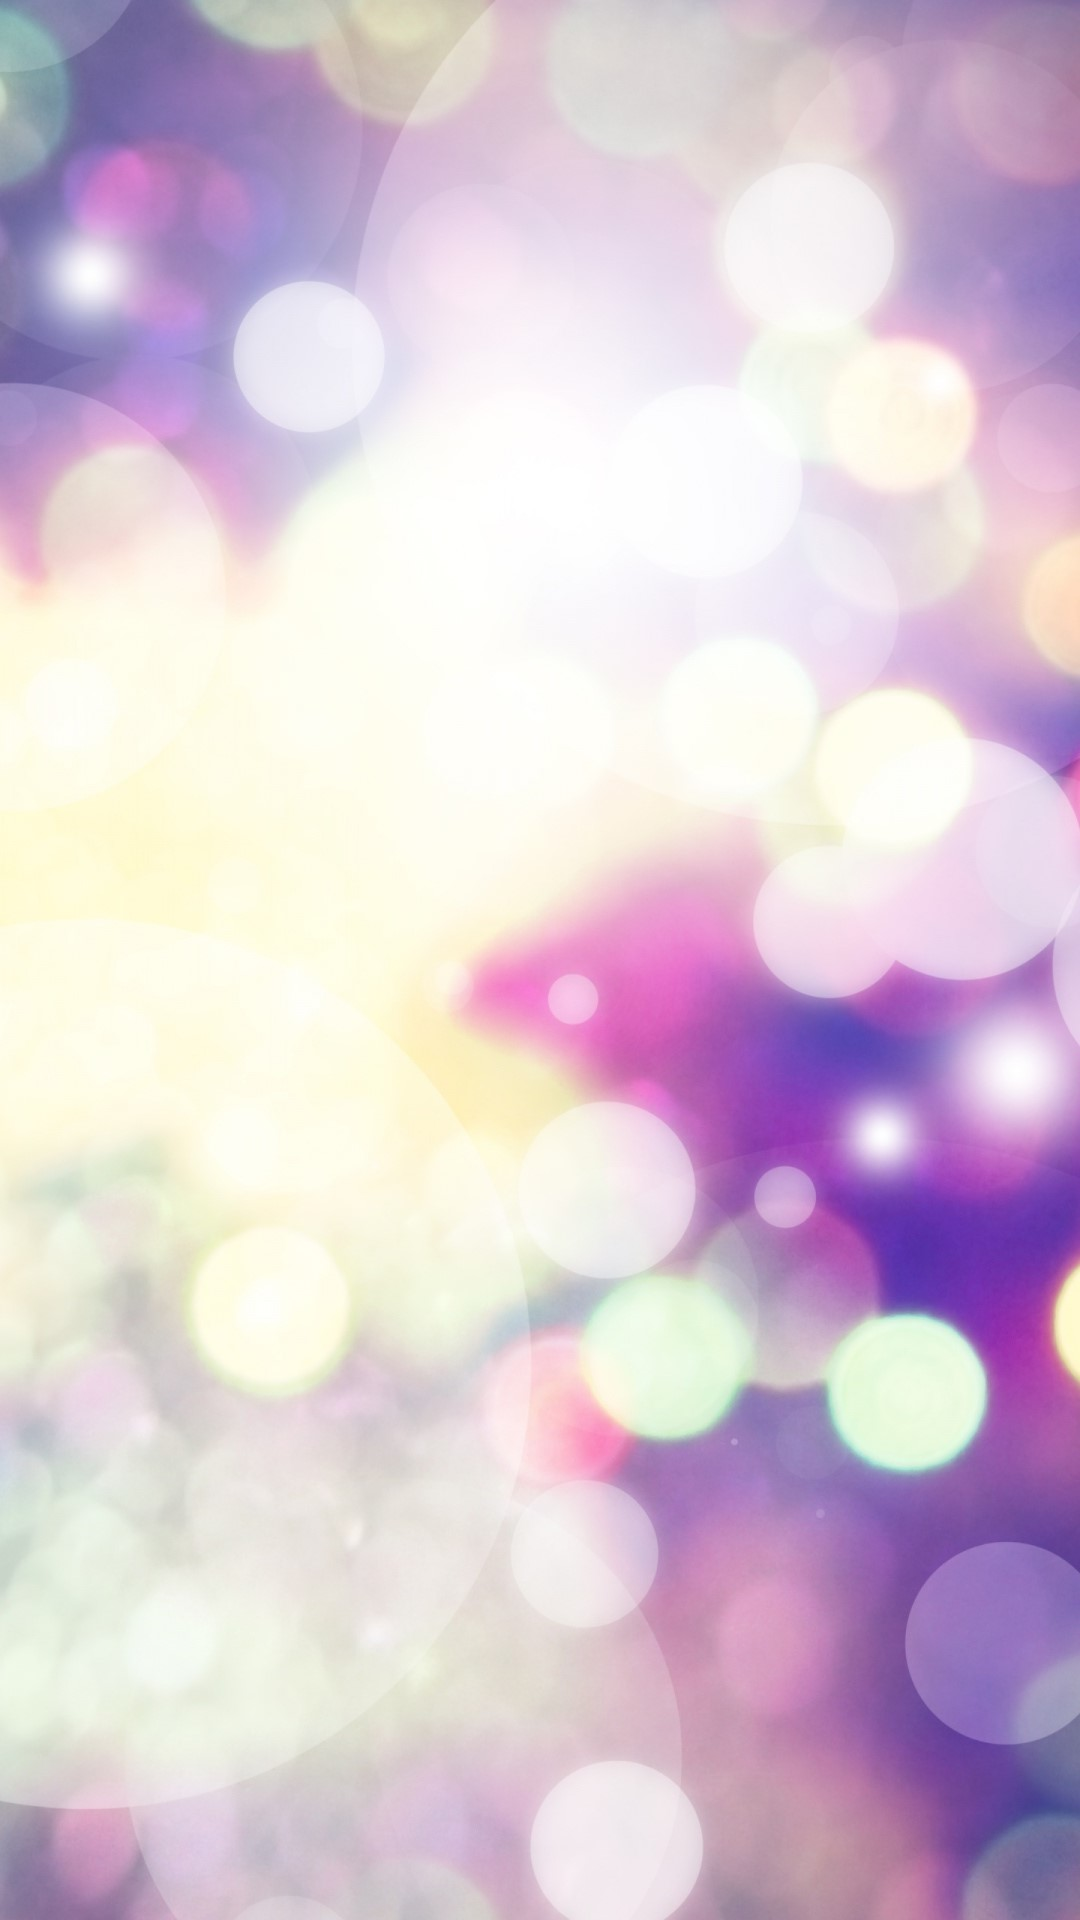 Blurred-Gradient-Bokeh-Lights-Backgrounds-Collection-Beautiful-Blurred-Puple-Bokeh-Lights-m-wallpaper-wpc580573